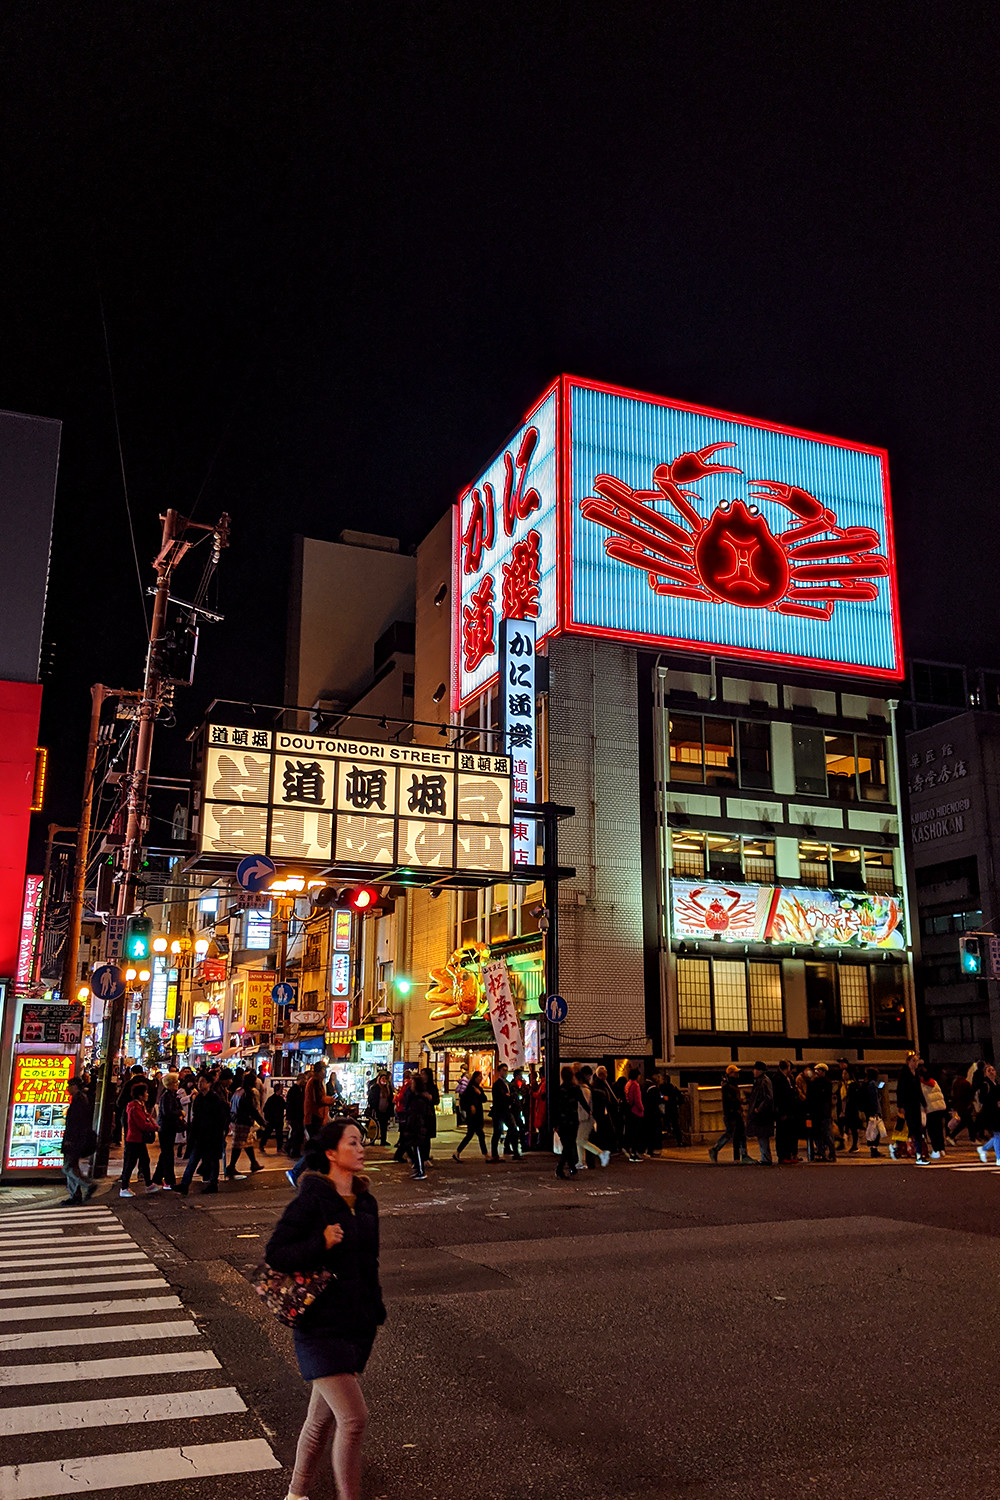 22osaka-dotonbori-nightlife-japan-travel